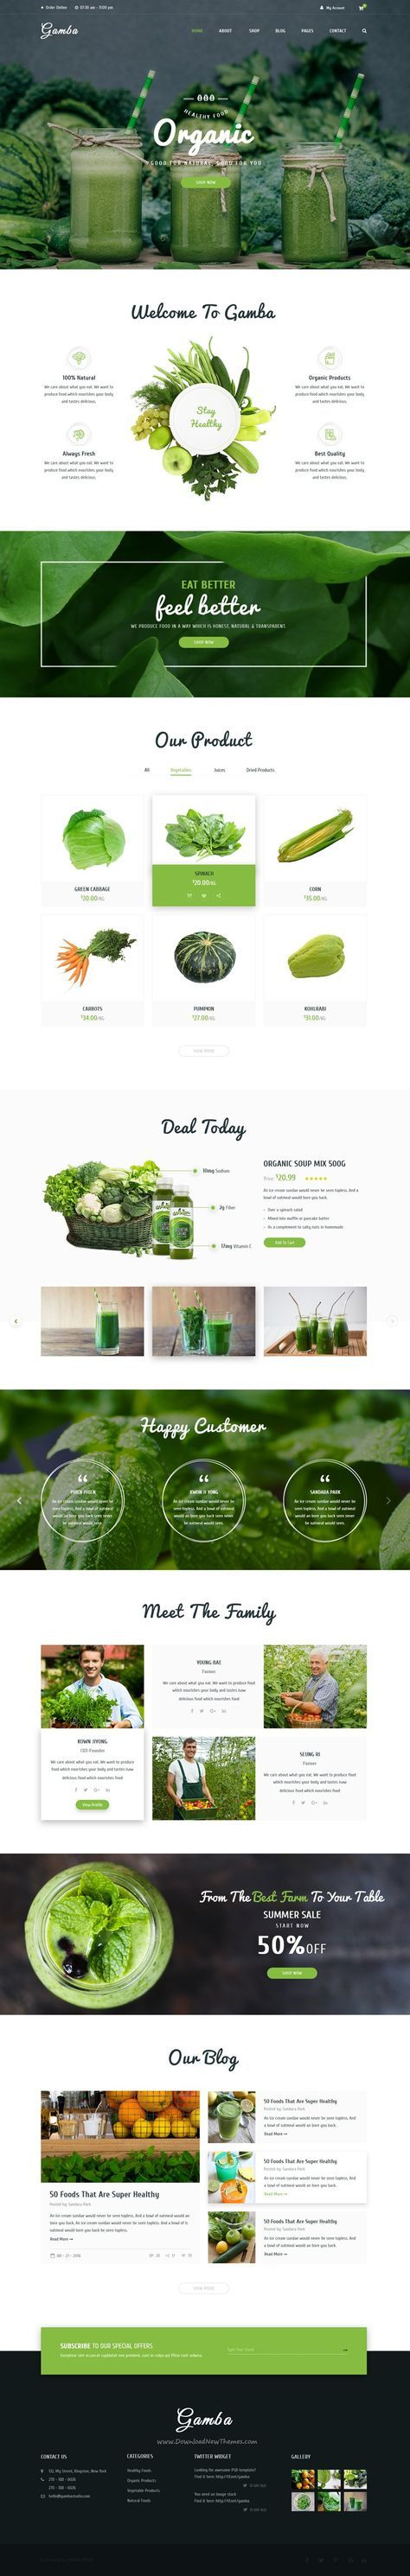 Gamba is a powerful, modern and creative #PSD template designed for food #organic #shop websites download now➯ themeforest.net/...